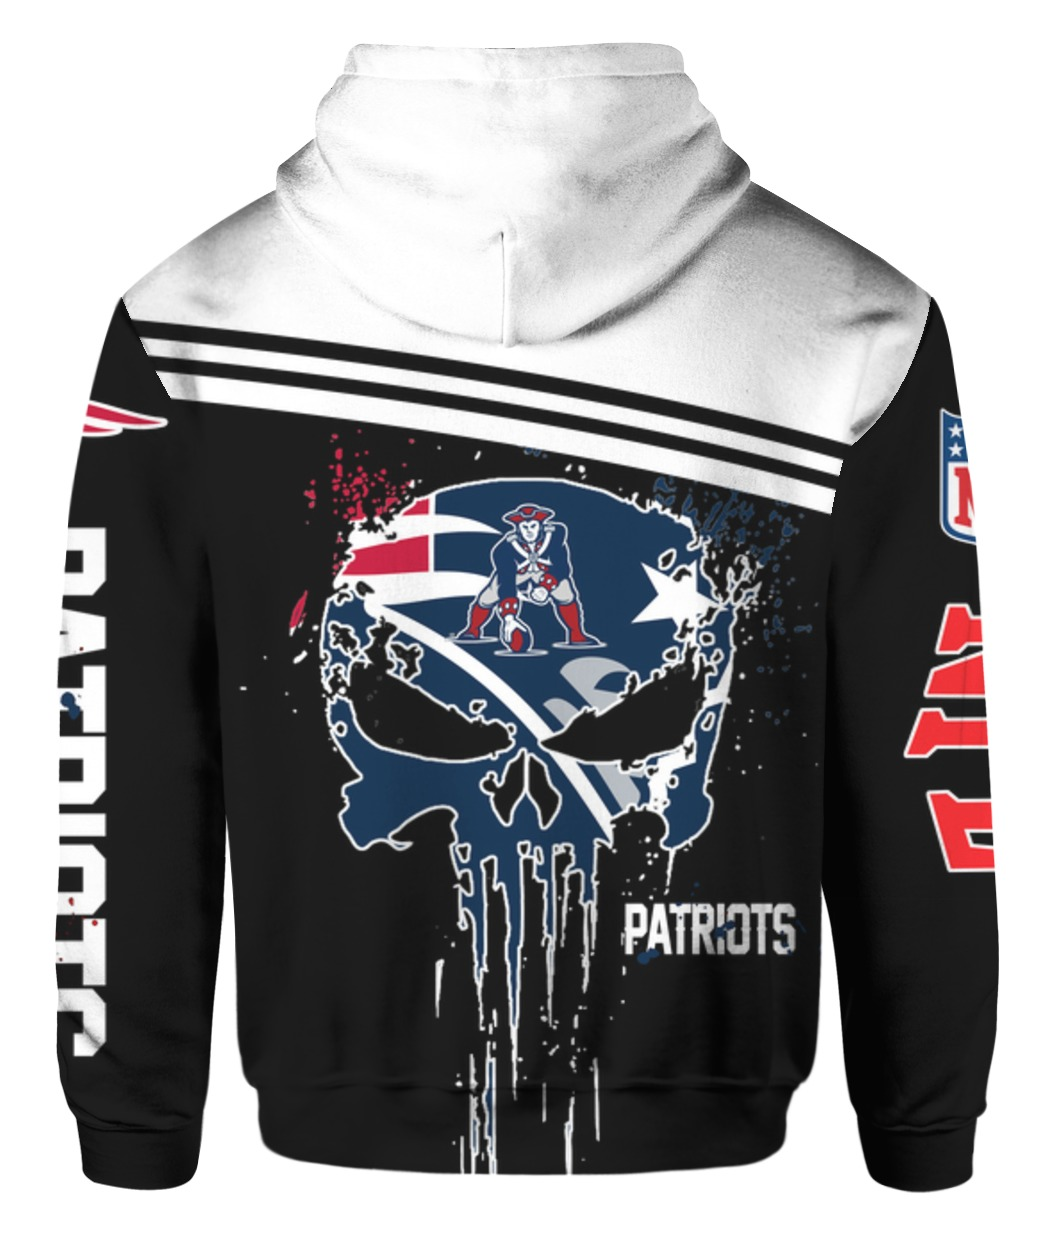 The punisher new england patriots full printing hoodie - back